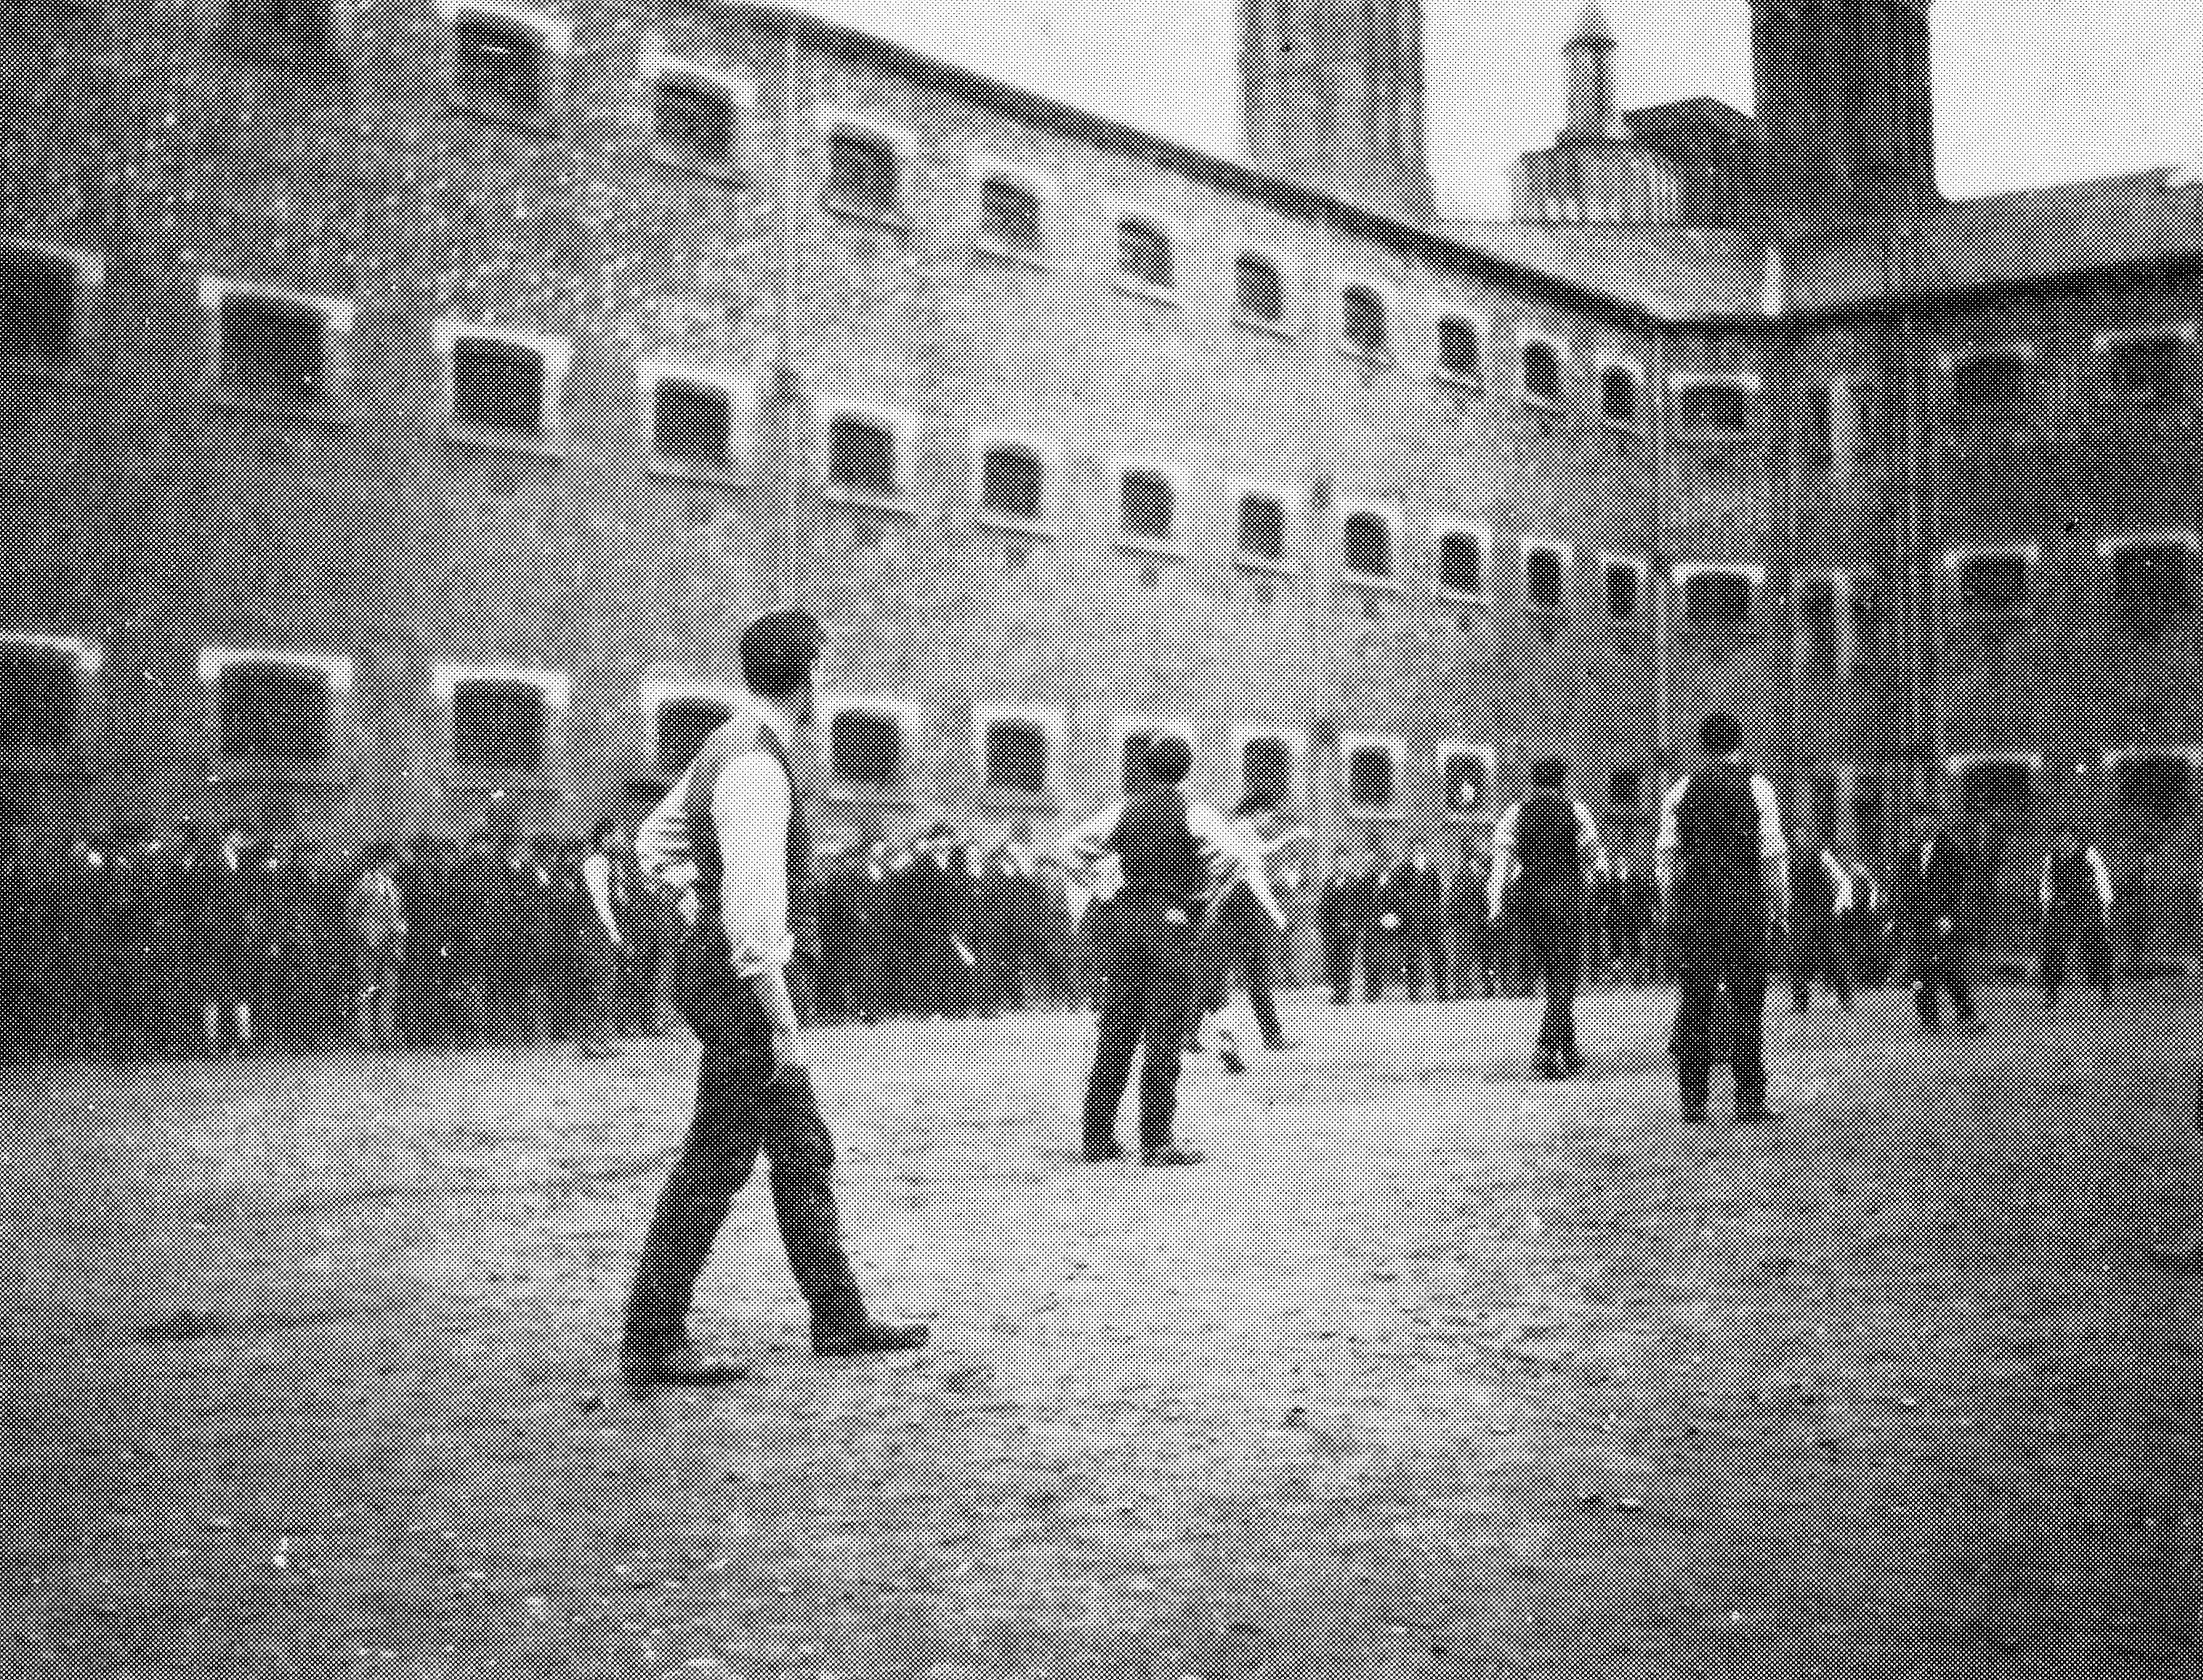 Football Game in Stafford Jail, 1916